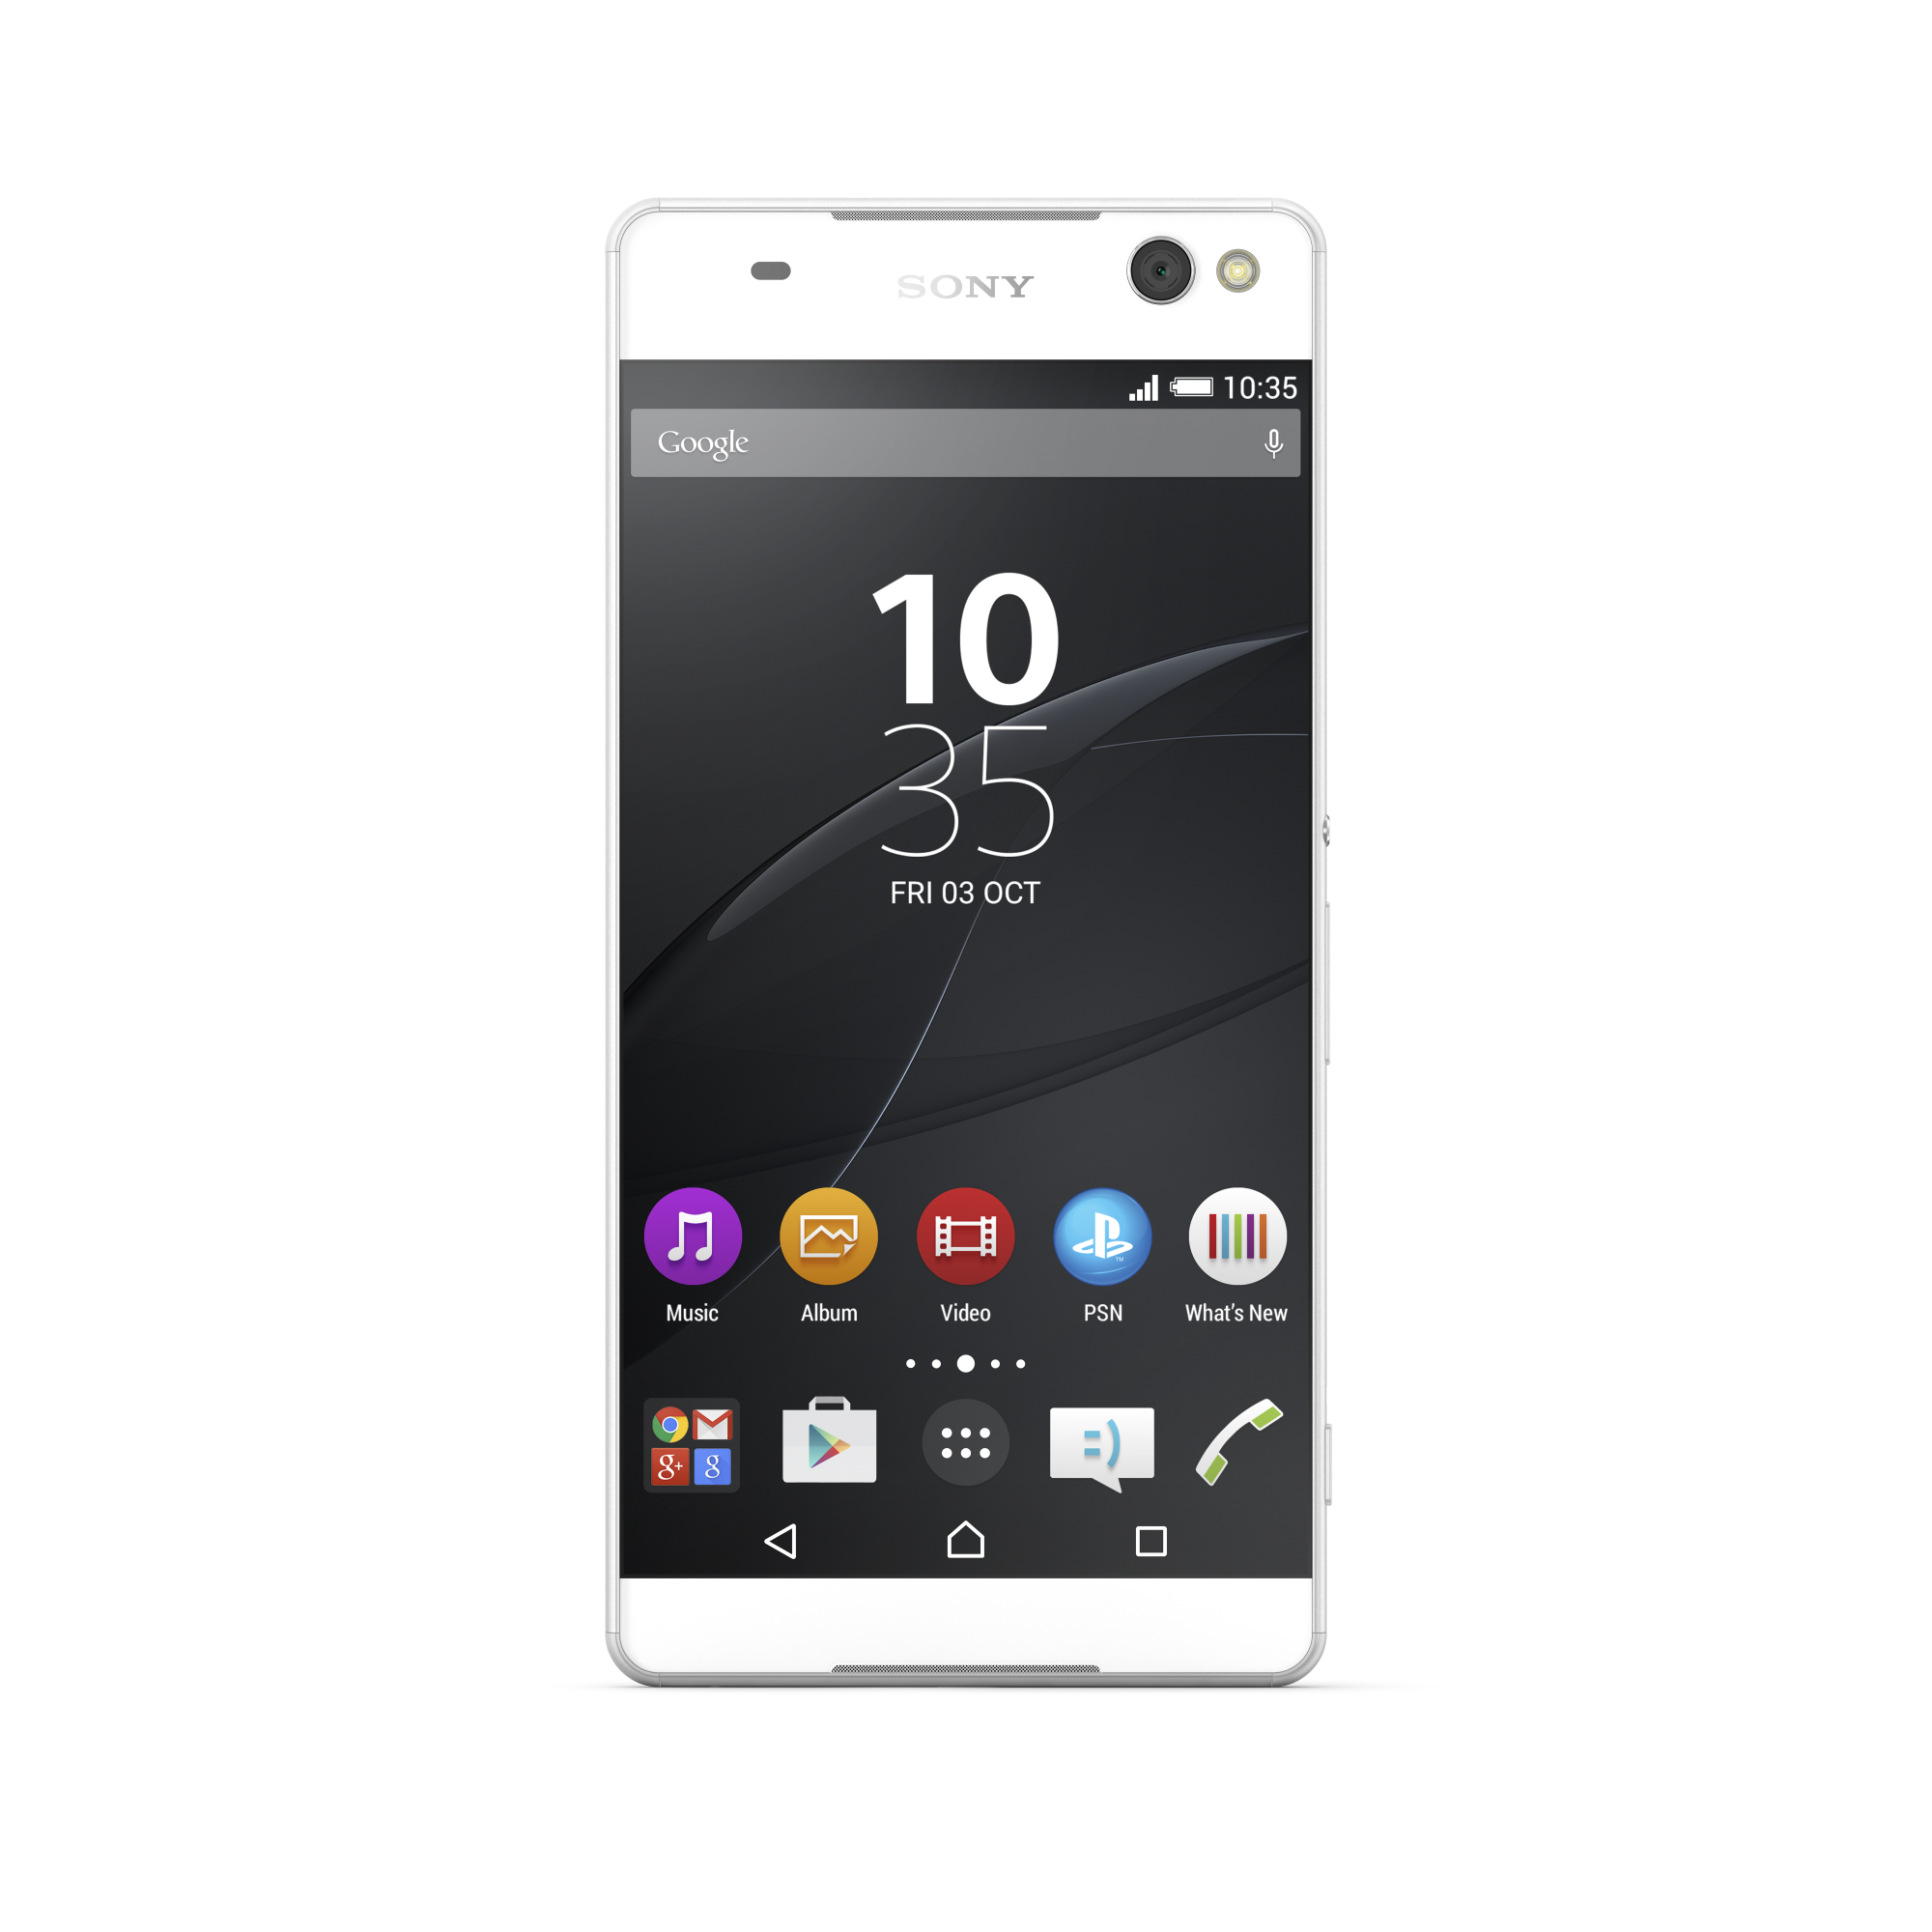 Xperia C5 Ultra Dual is the best selfie phone from Sony